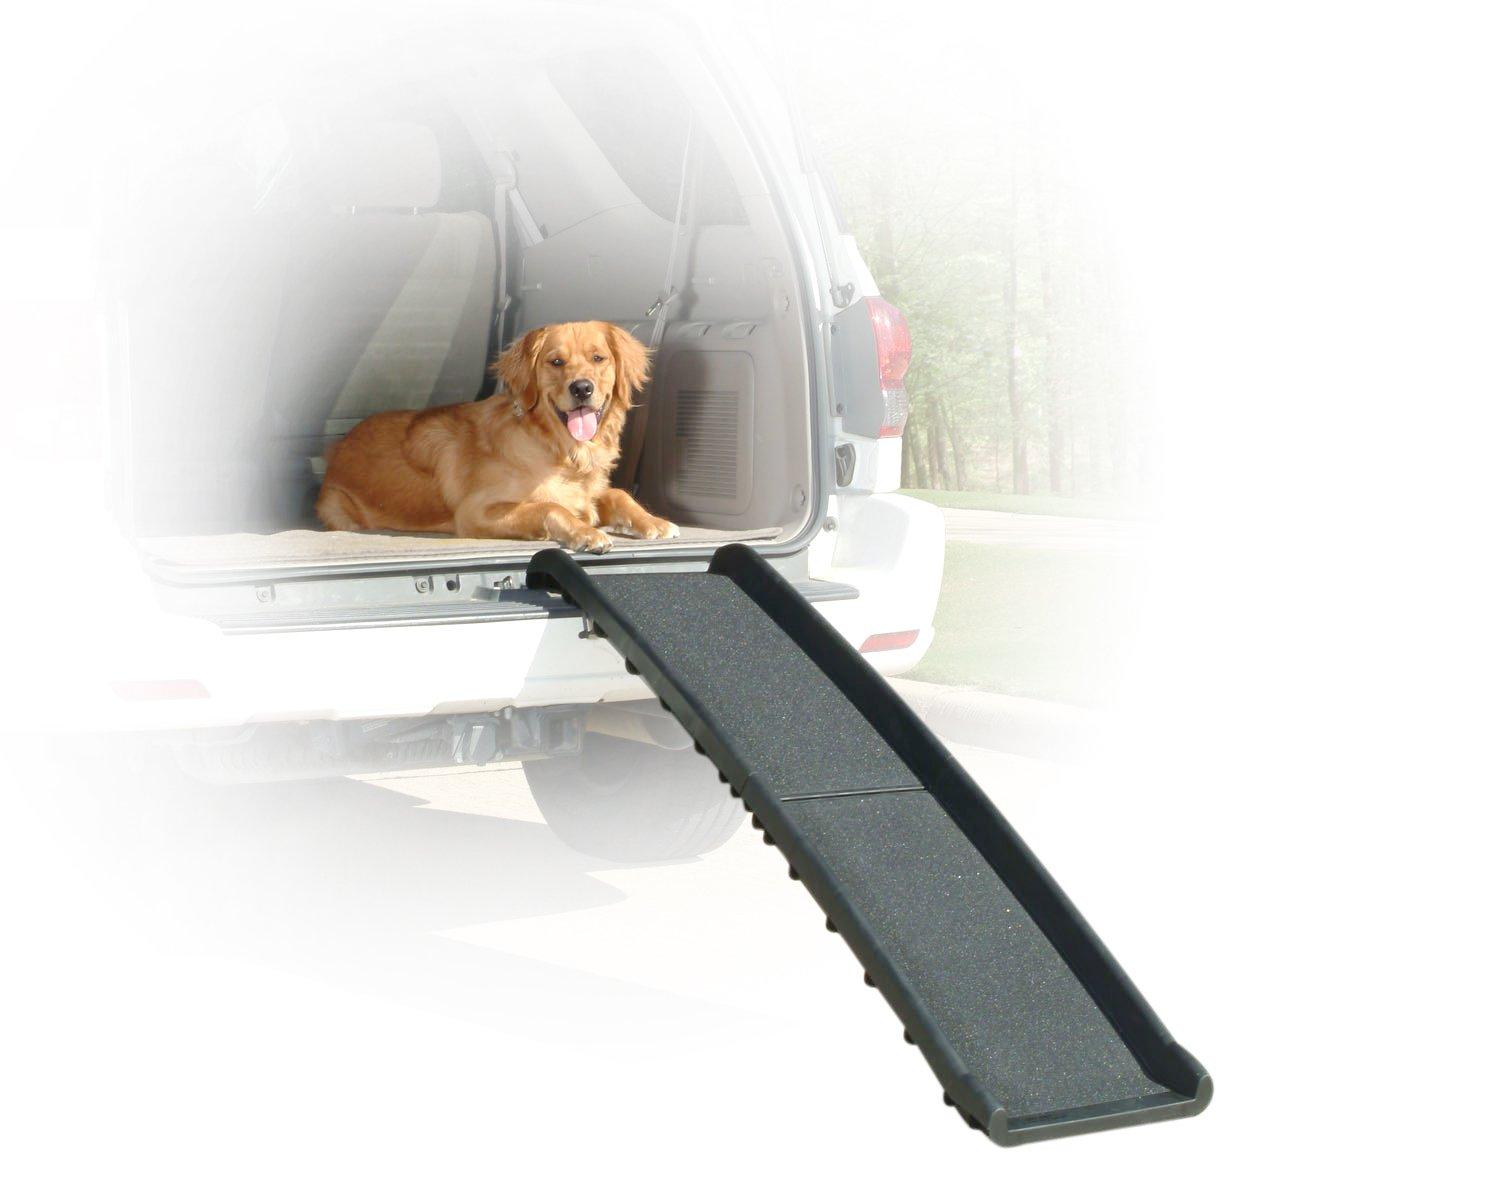 2. Solvit Ultralite Bifold Pet Ramp